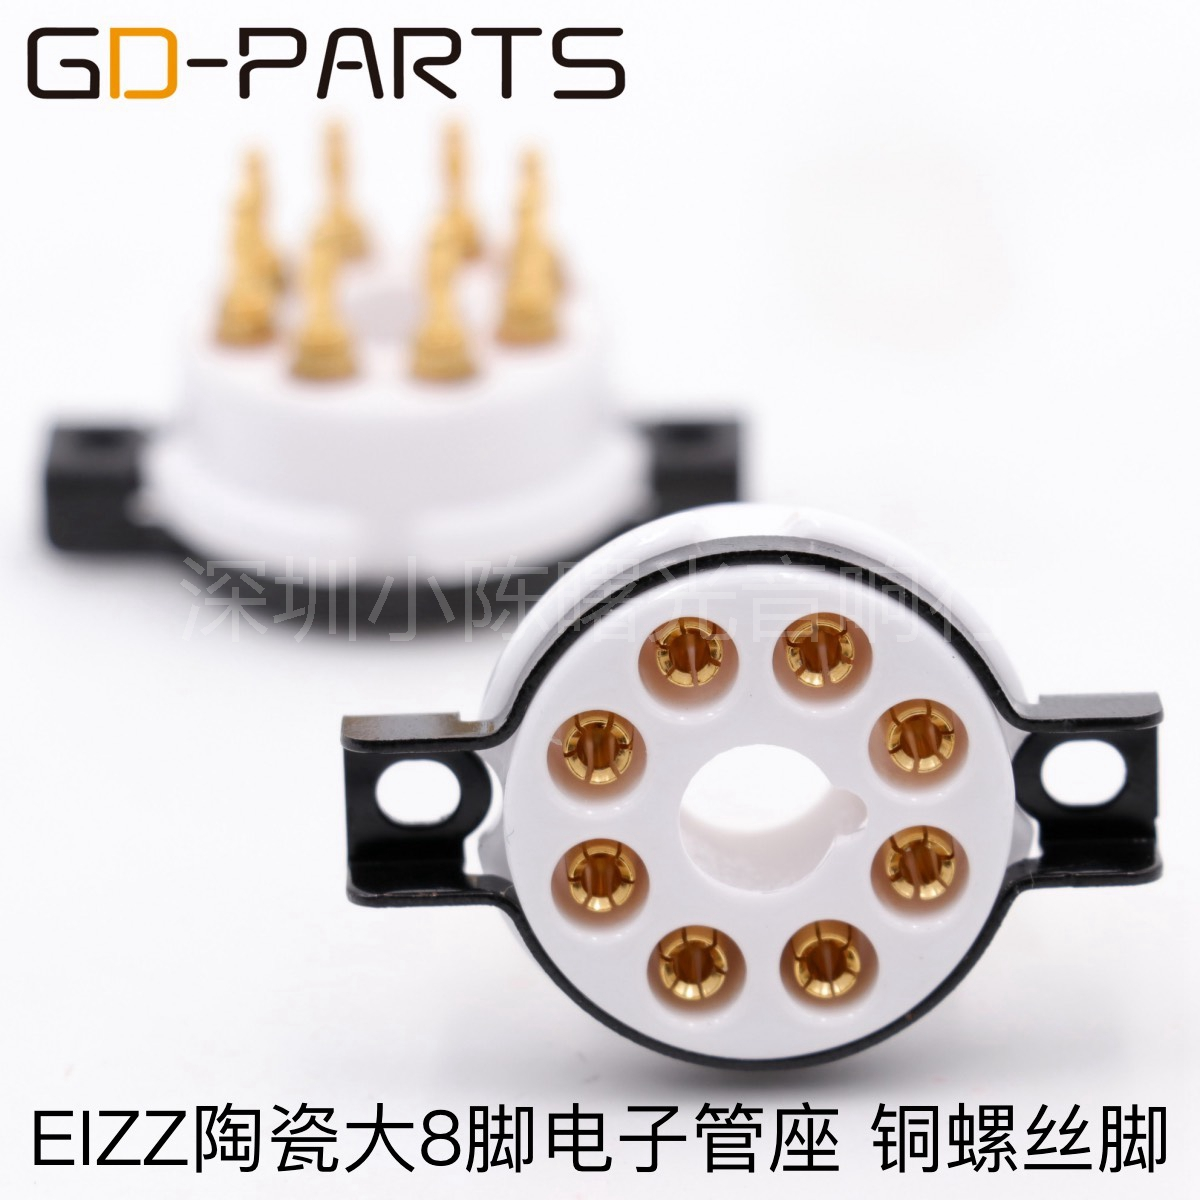 300b 2a3 For Large Four-leg Flat Gold-plated Tube Socket Free Shipping Active Components